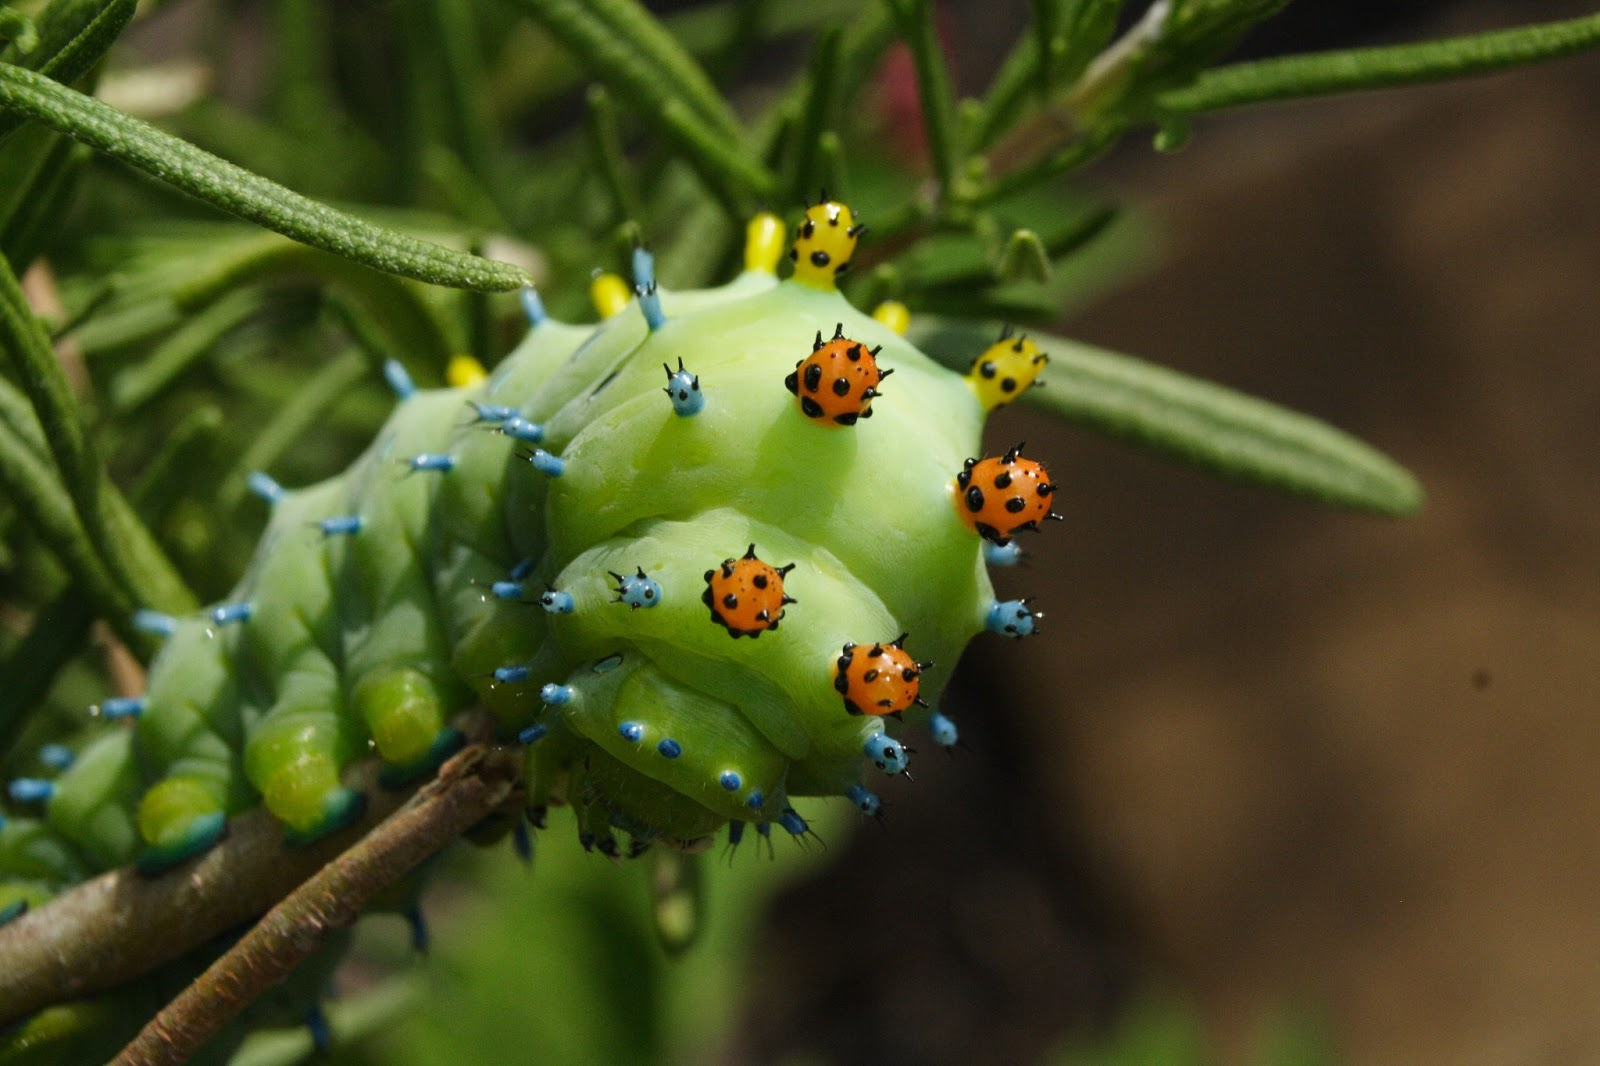 ... County (PA) Master Gardeners: What is THAT? Cecropia Moth Caterpillar